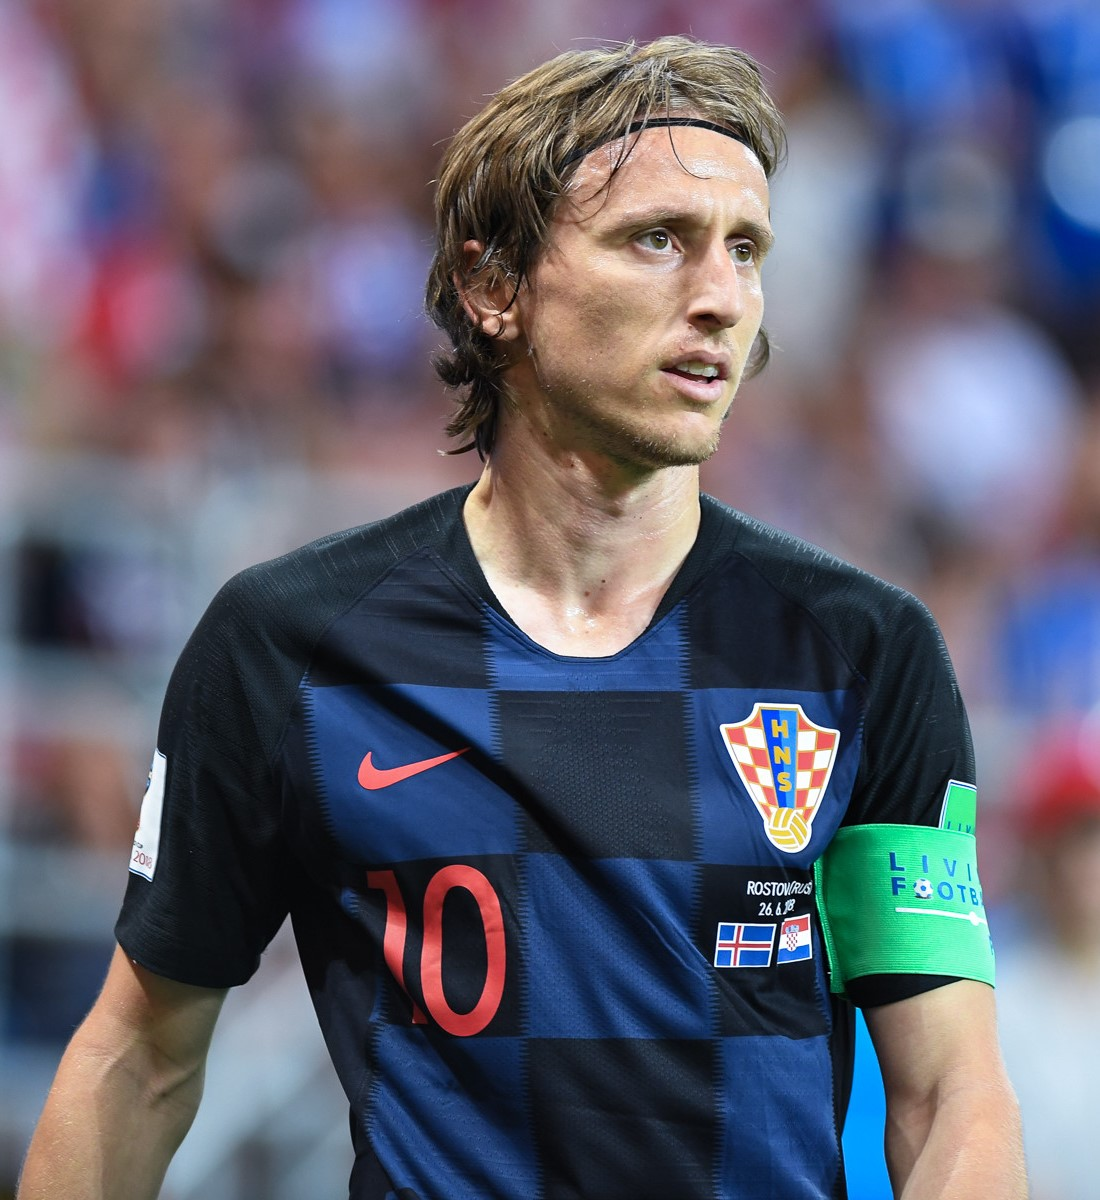 The 33-year old son of father Stipe Modrić and mother Radojka Modrić Luka Modric in 2018 photo. Luka Modric earned a  million dollar salary - leaving the net worth at 7.5 million in 2018